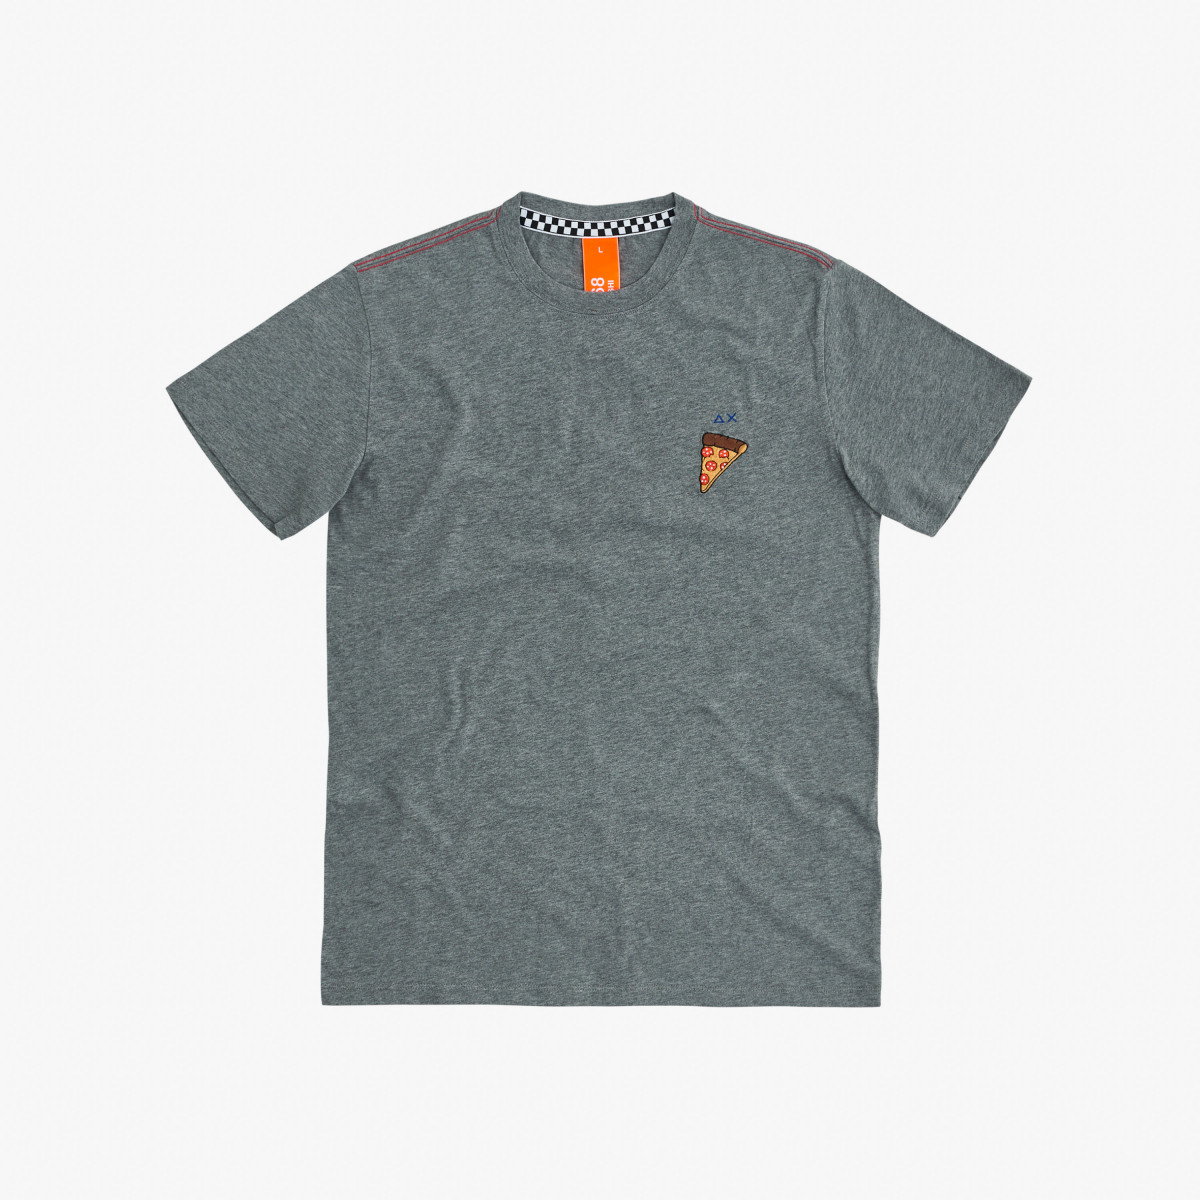 ROUND T-SHIRT WITH PATCH S/S MEDIUM GREY